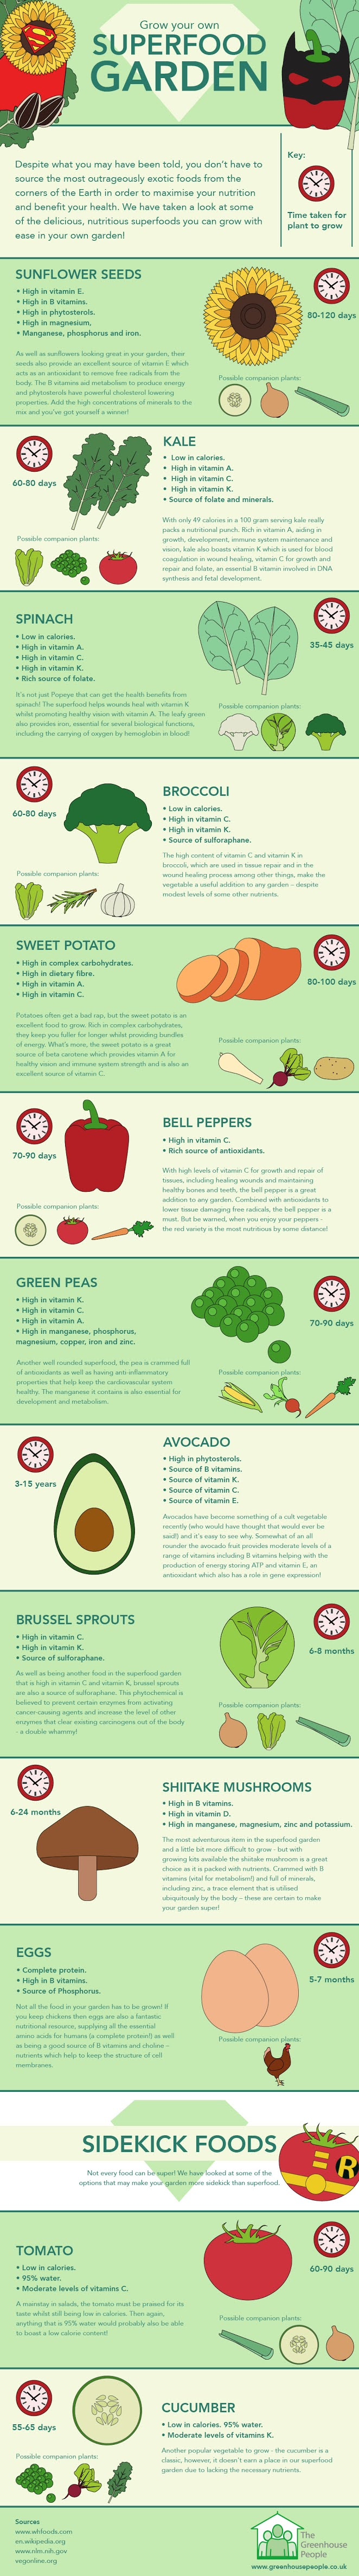 Grow Your Own Superfood Garden #infographic #Home & Garden #Superfood Garden